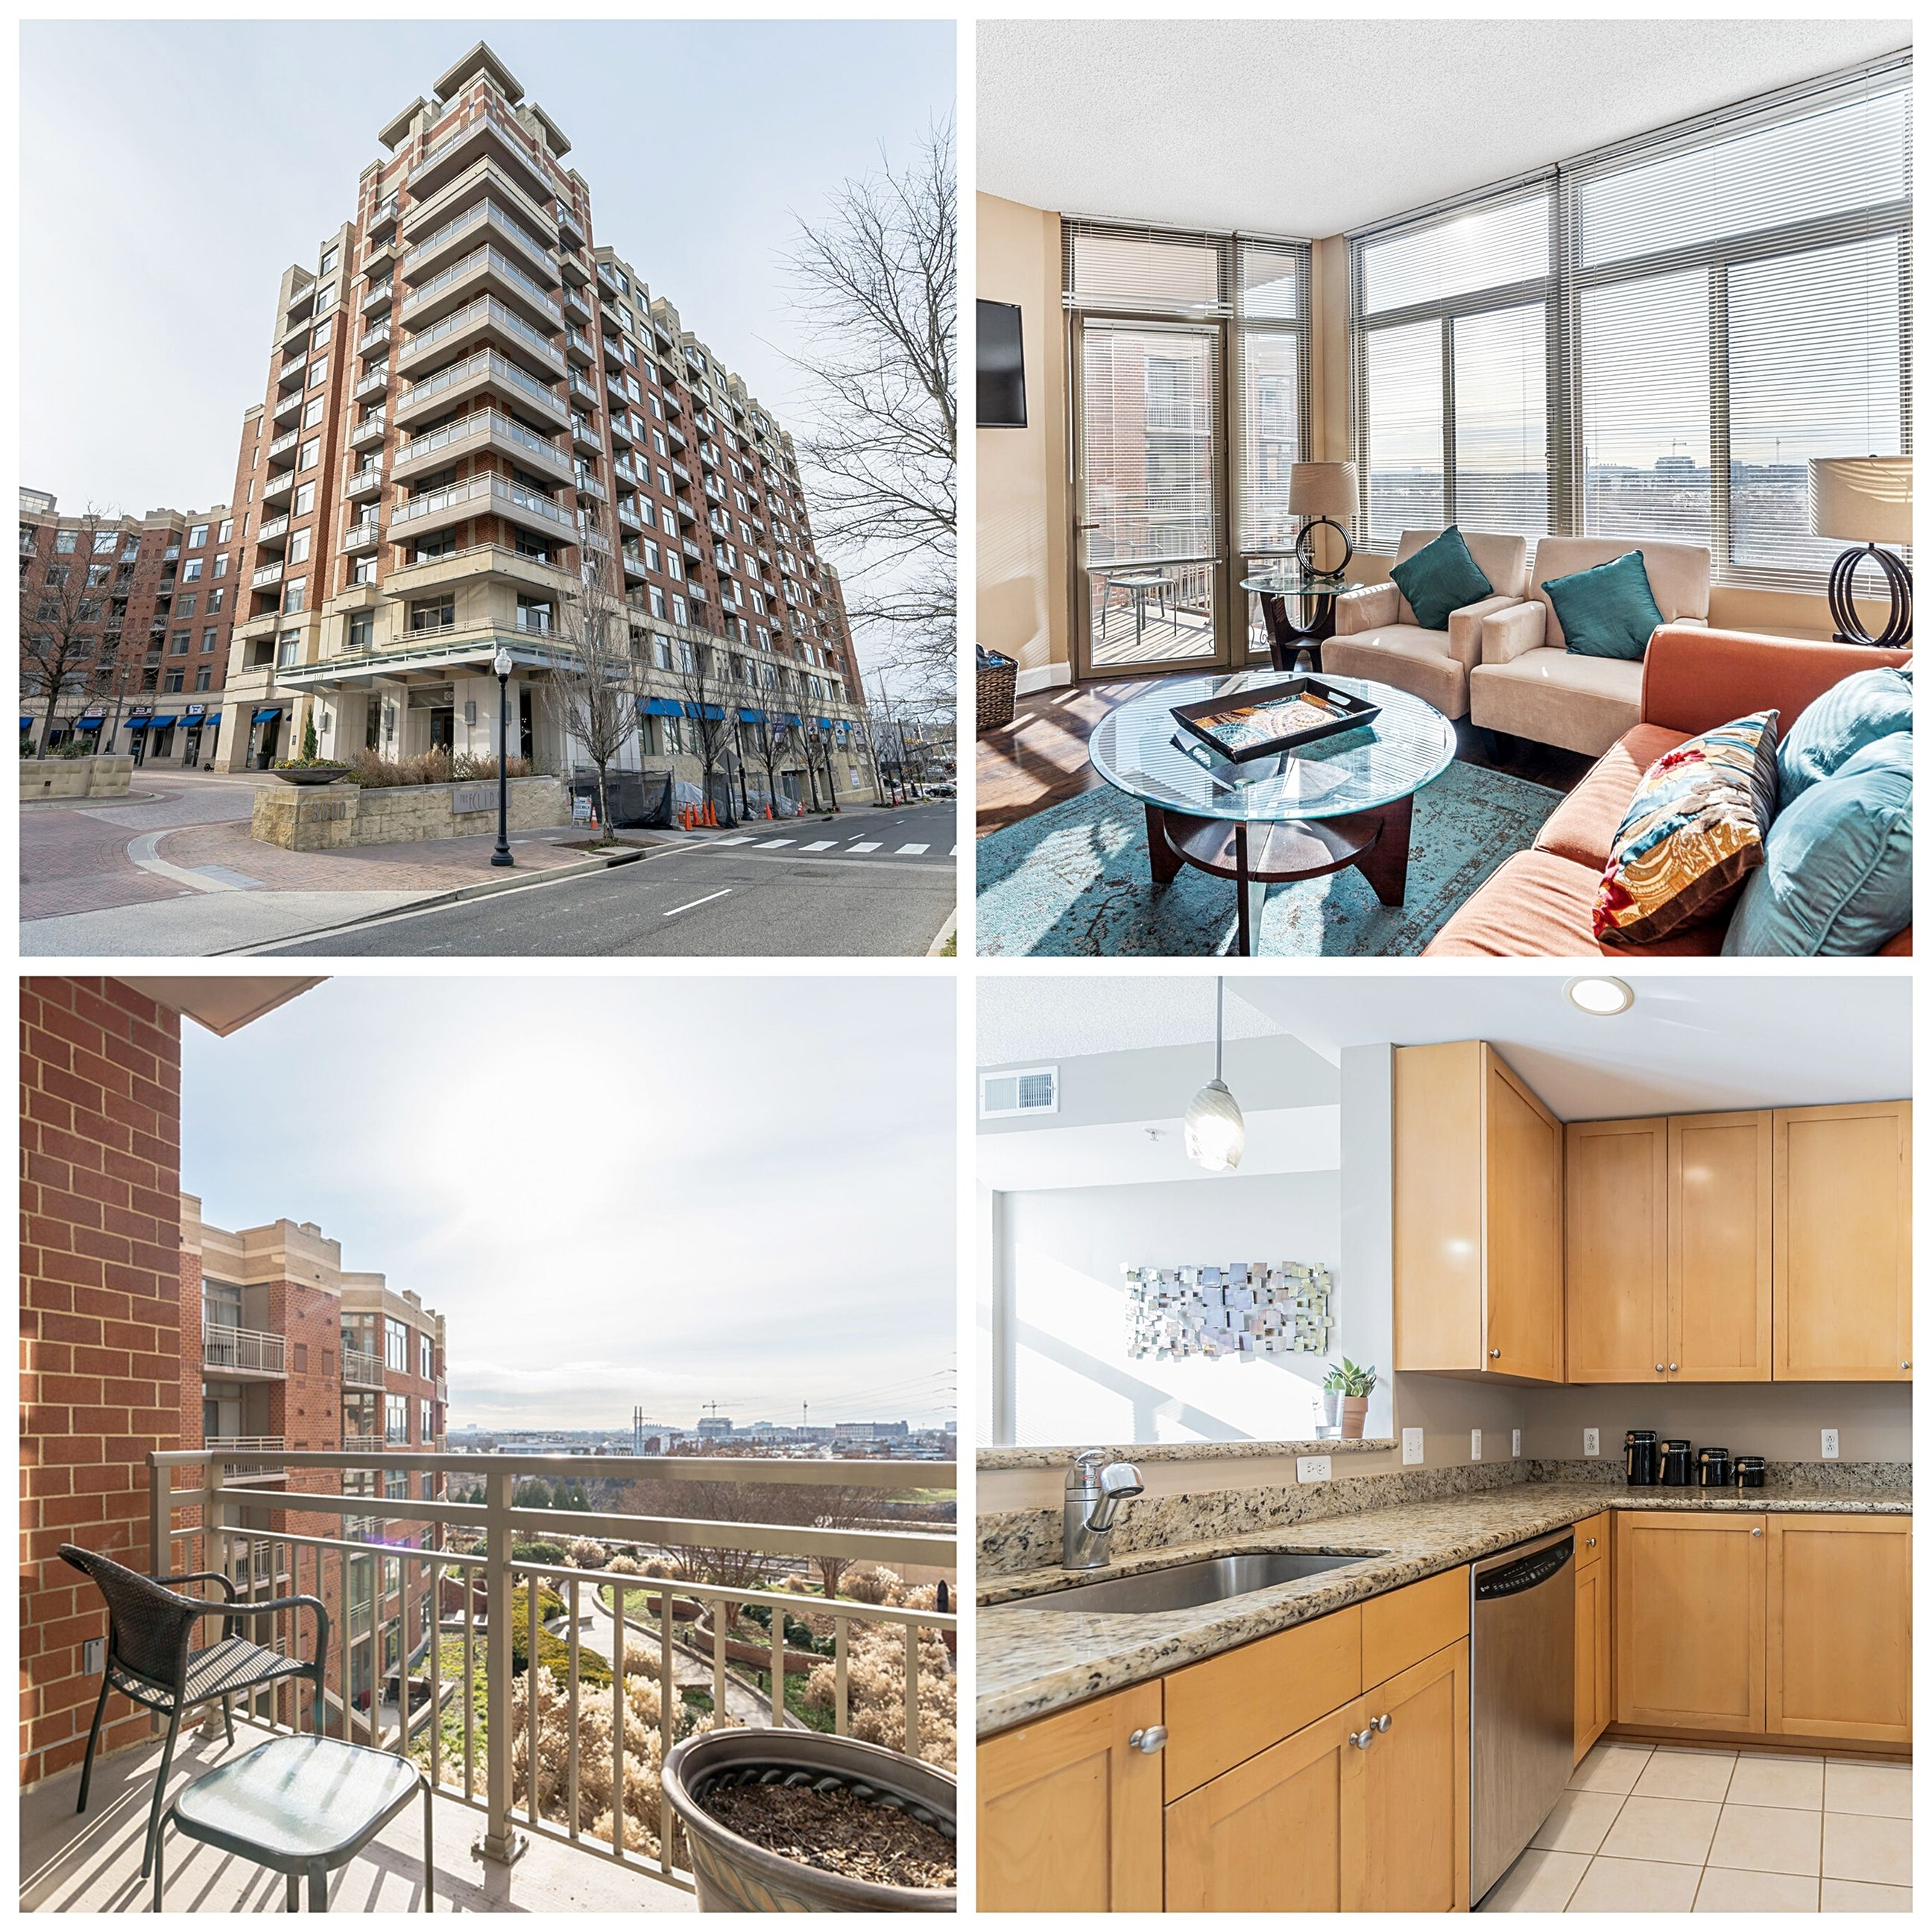 Cazalisting Openhouse 1 11 Sat 2 4pm And 1 12 Sun 2 4pm Don T Miss This Beautiful 1 Bedroom Unit With A Den For More Inf In 2020 House Styles Home Buying Open House